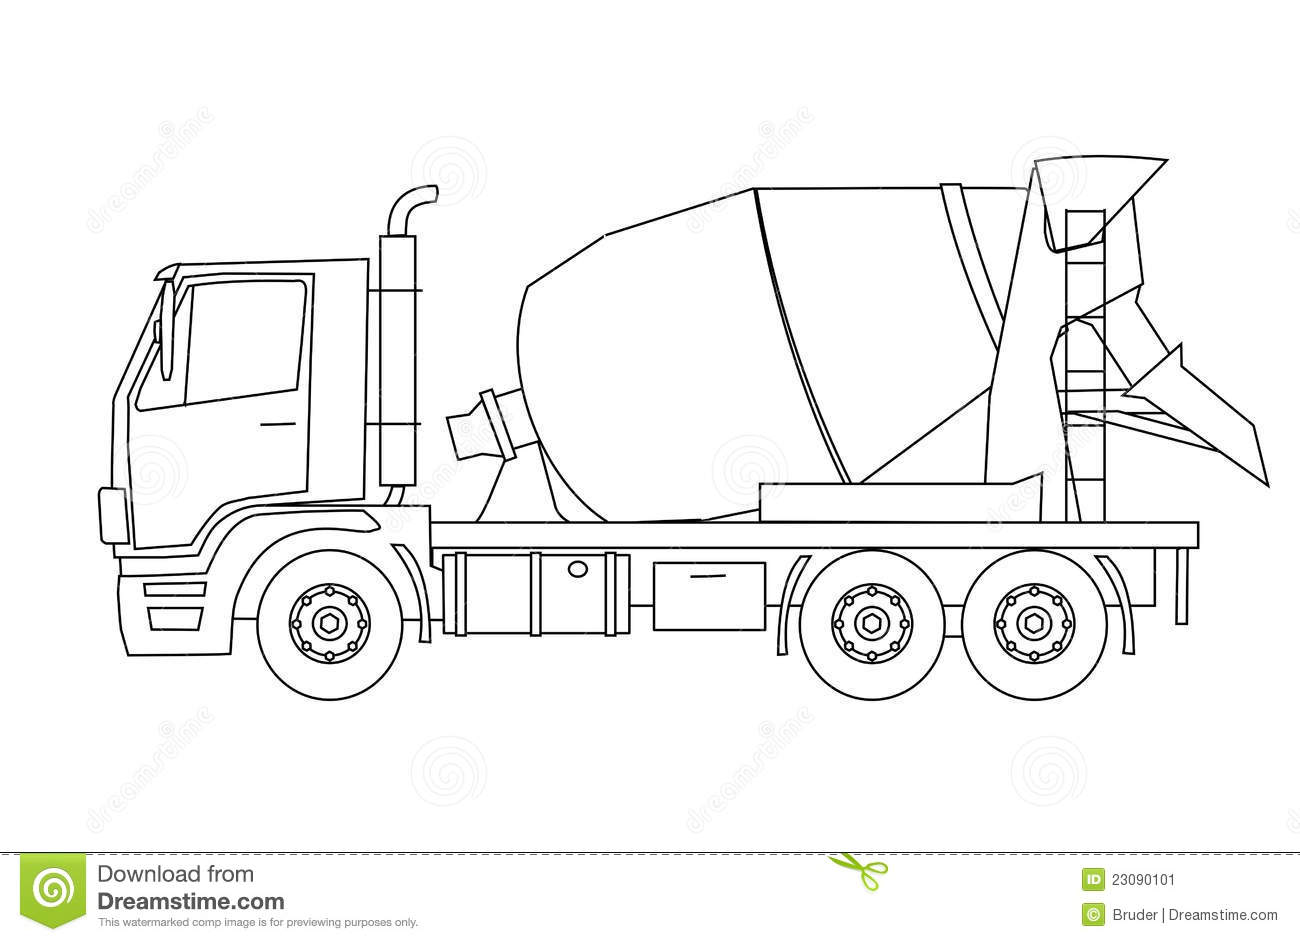 concrete mixer truck coloring pages - photo#27